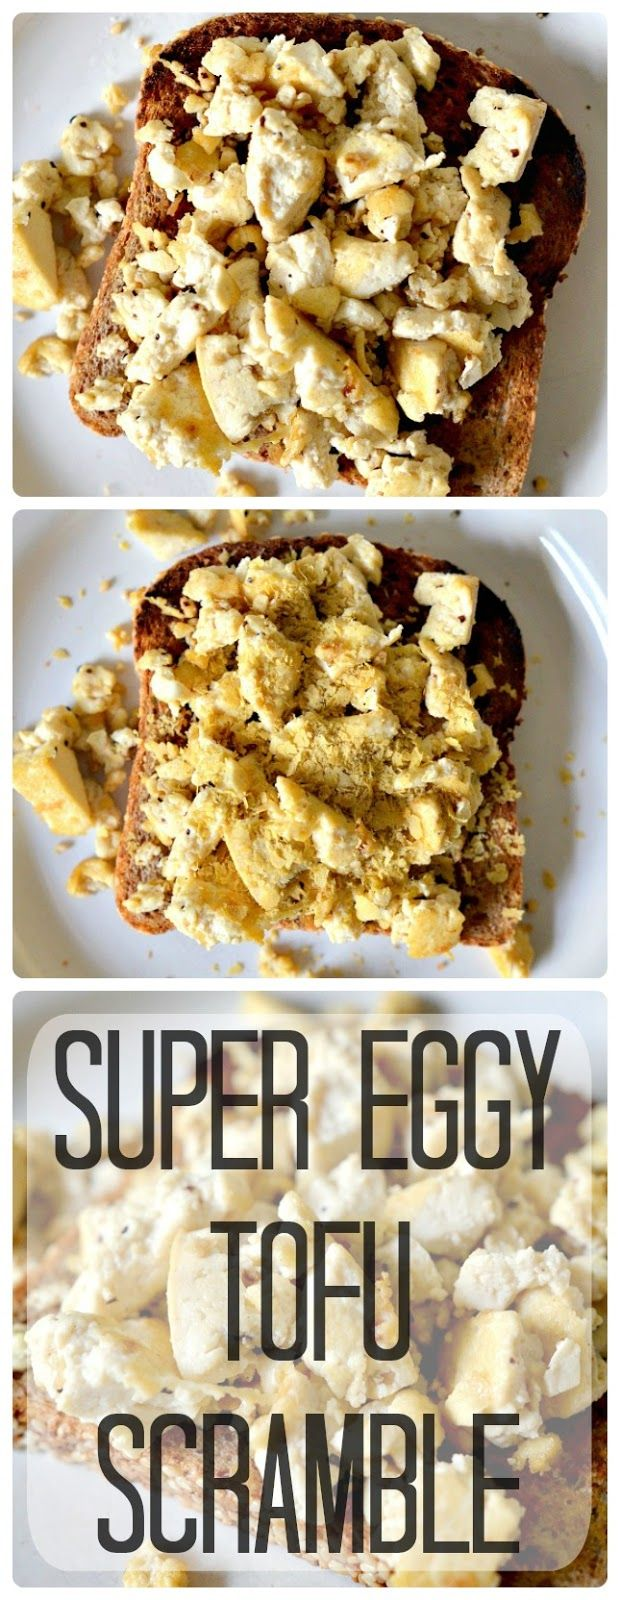 Housevegan.com: Super Eggy Tofu Scramble - My favorite scramble ever. It's so easy, requires just a few ingredients, and is great for those who choose not to eat eggs, but miss the taste.